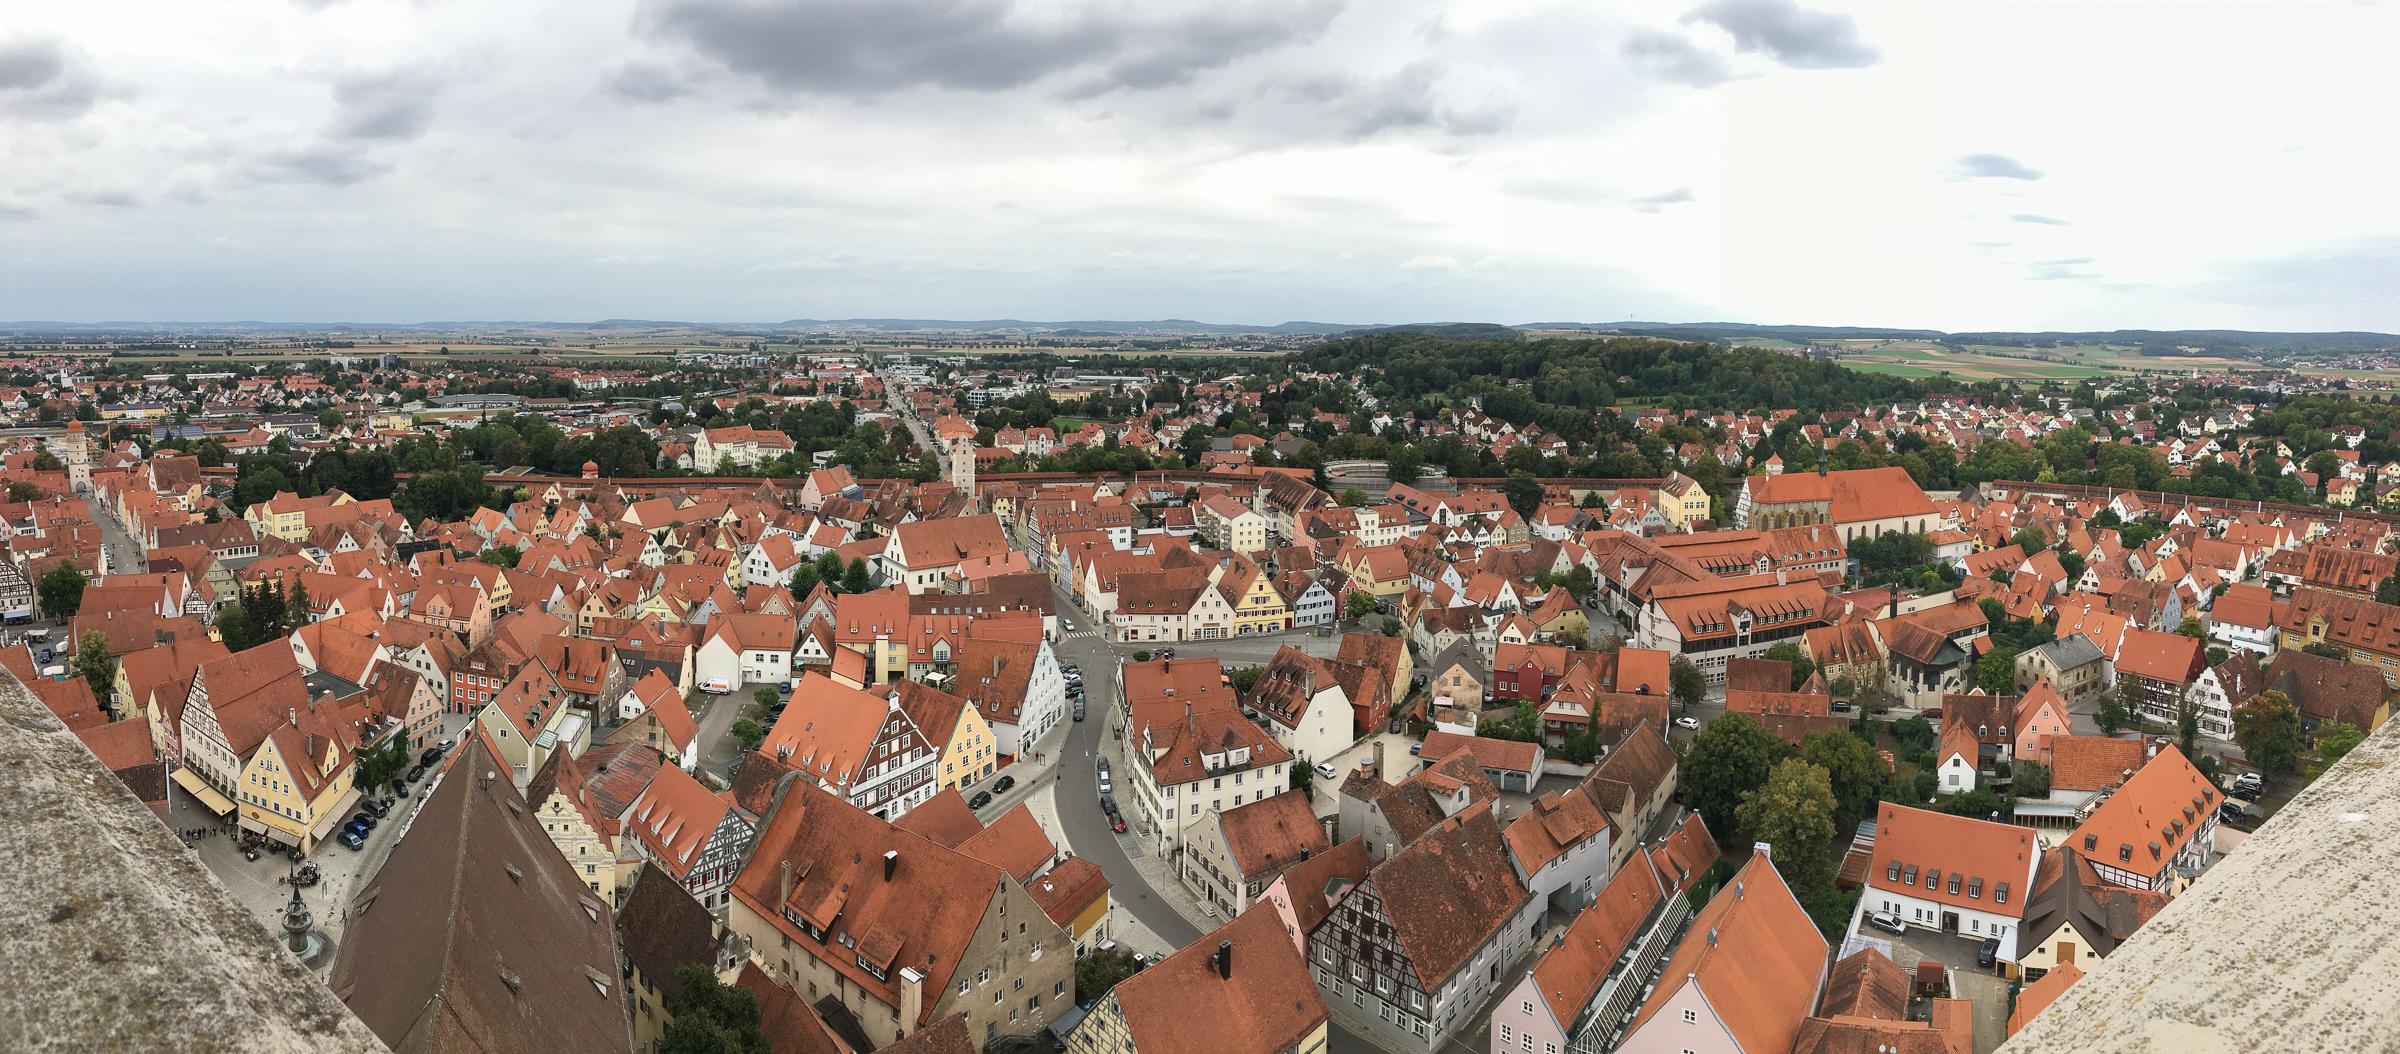 Panoramic pic from the top